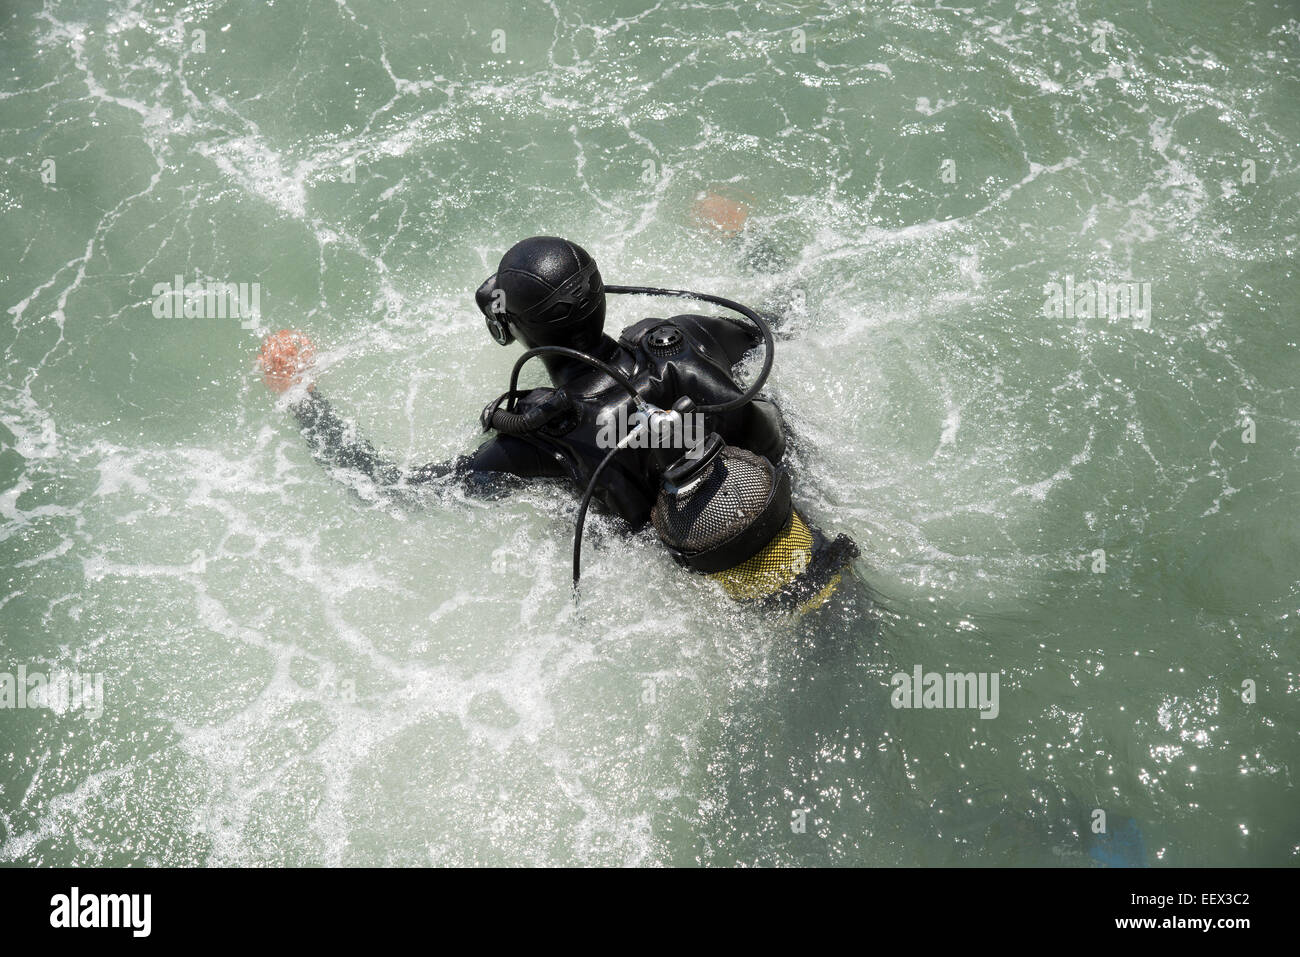 Commercial deep sea diver entering the water with a splash - Stock Image